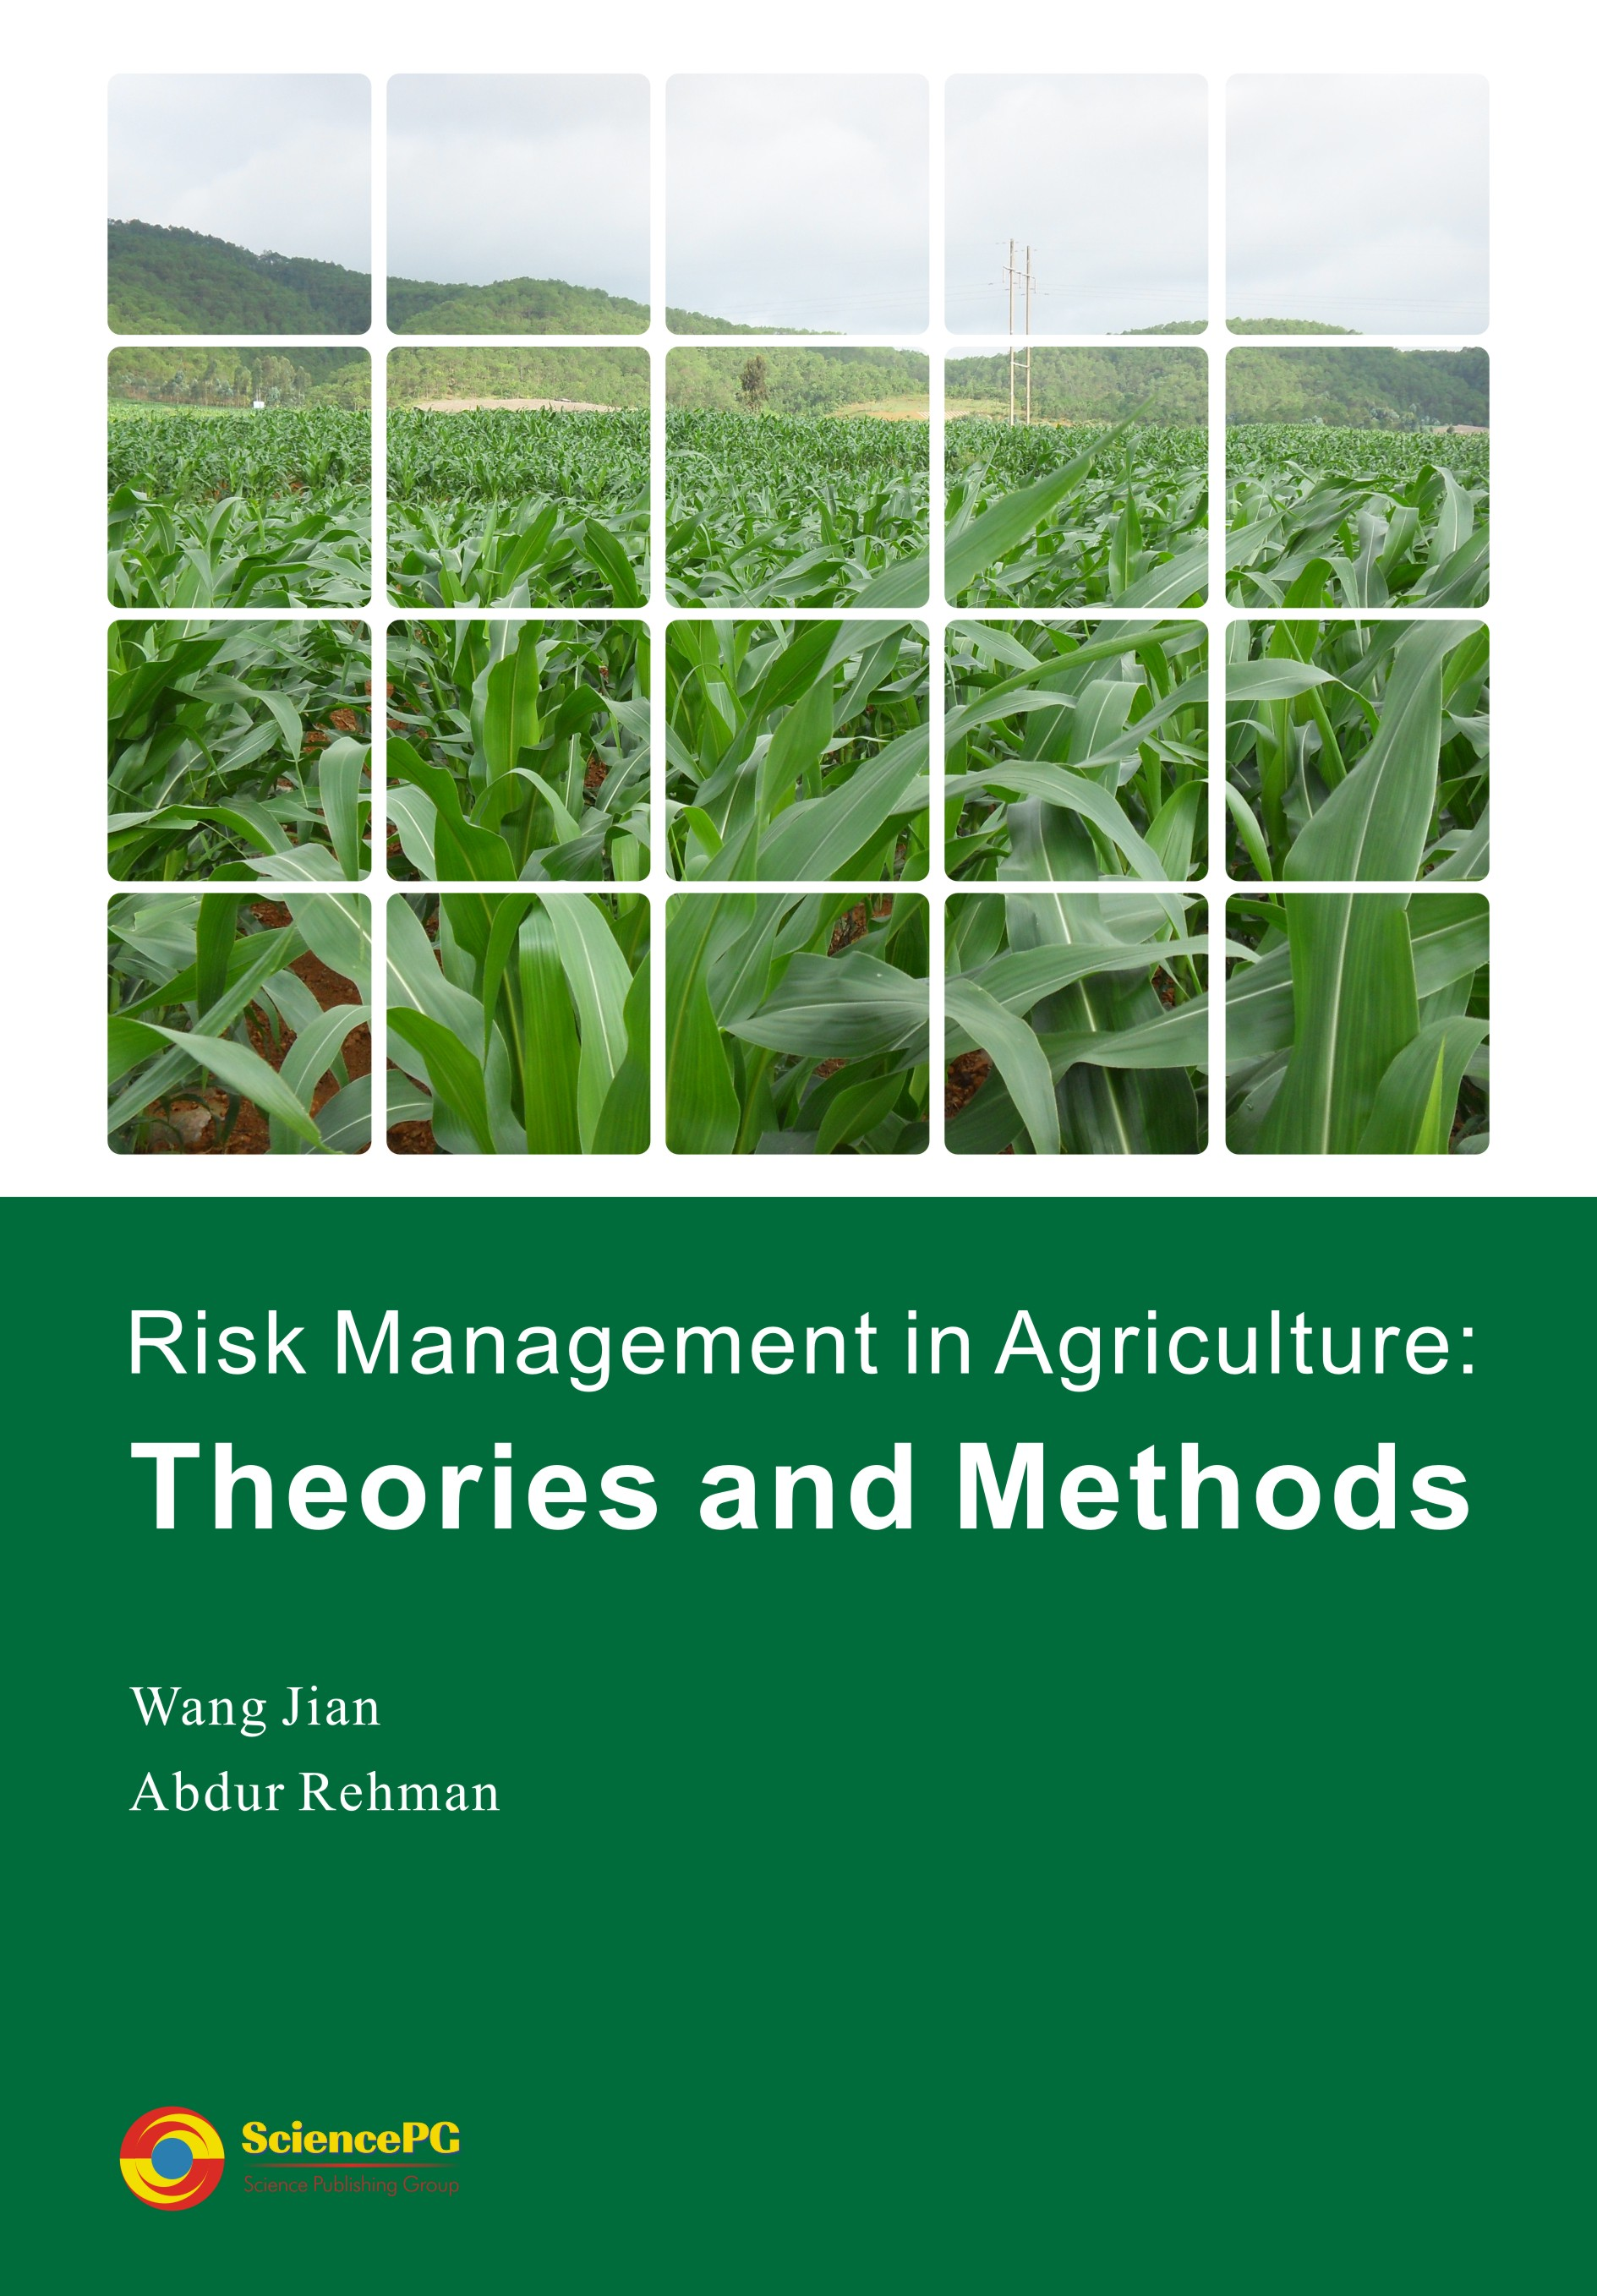 risk theory Modern actuarial risk theory contains what every actuary needs to know about non-life insurance mathematics it starts with the standard material like utility theory, individual and collective model and basic ruin theory other topics are risk measures and premium principles, bonus-malus systems.